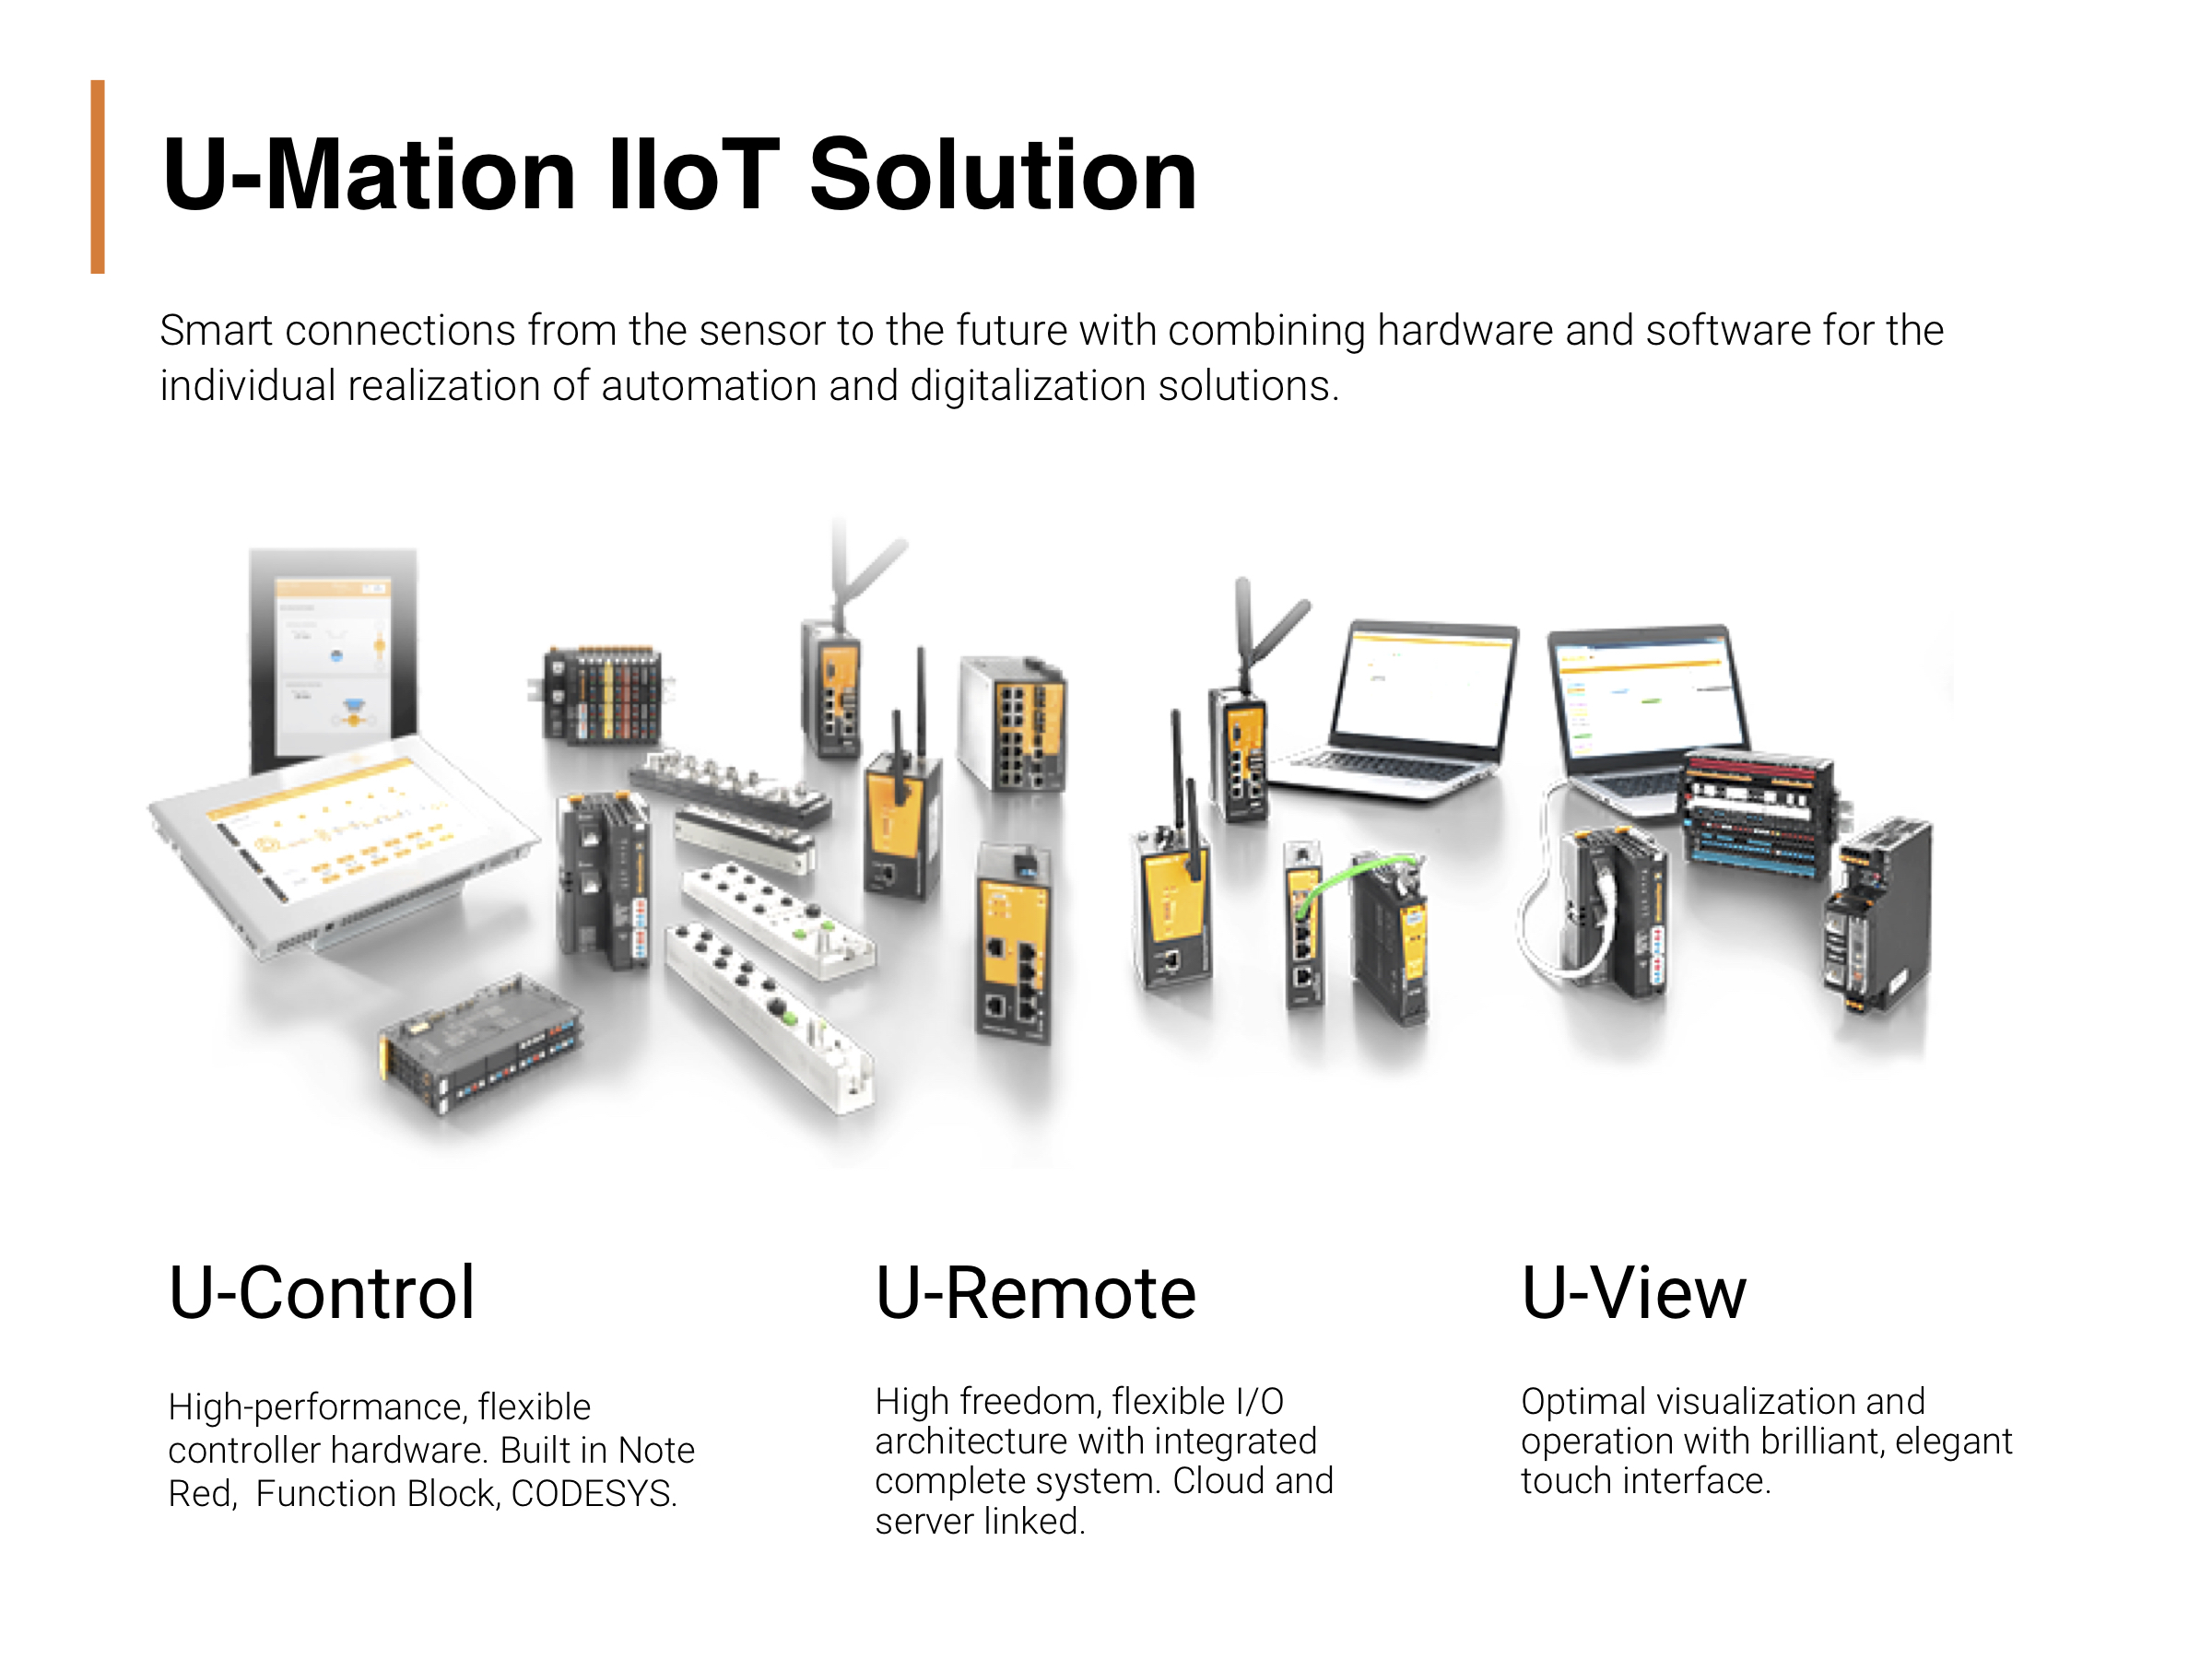 PADDI persents Weidmuller U-mation IIoT solution products